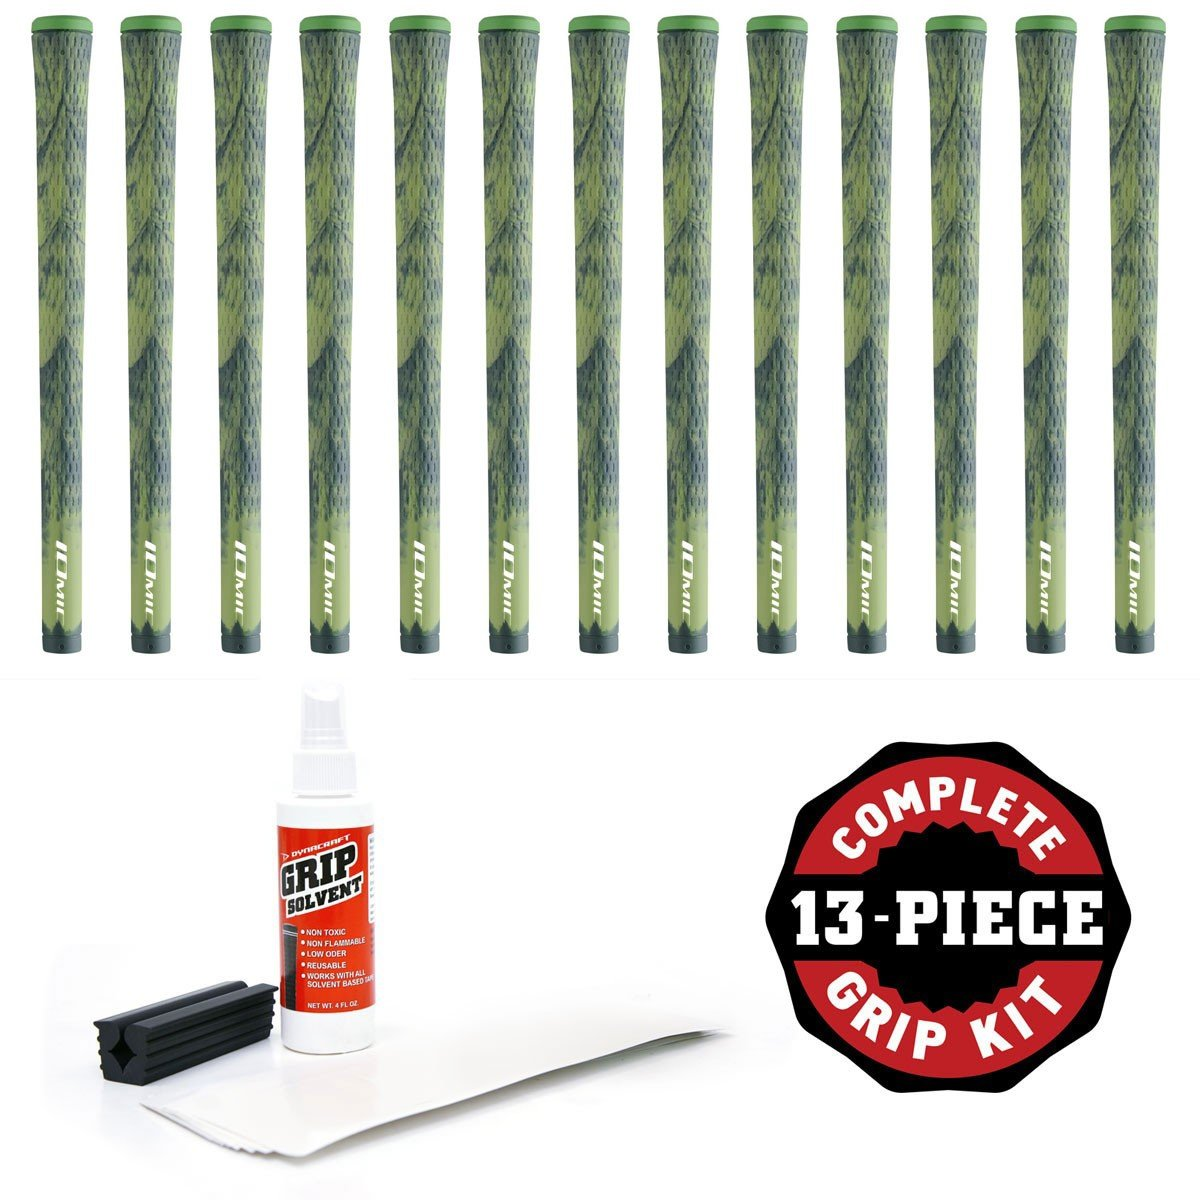 Iomic Sticky Grip Kit with Tape, Solvent and Vise Clamp (13-Piece), Camo Green